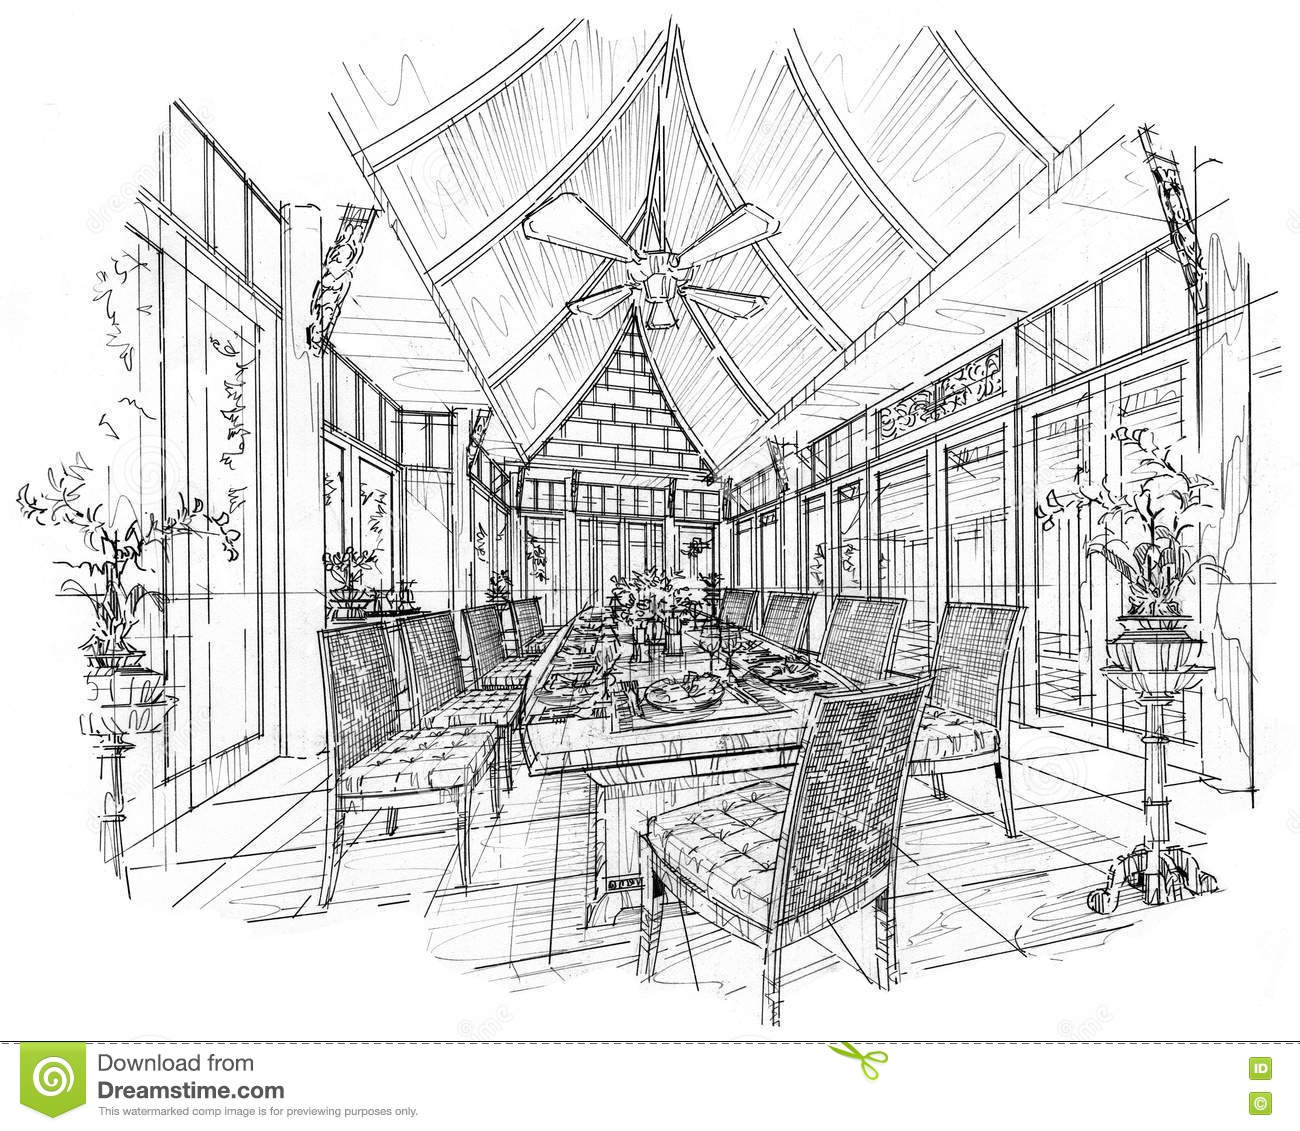 Sketch interior perspective dining room black and white